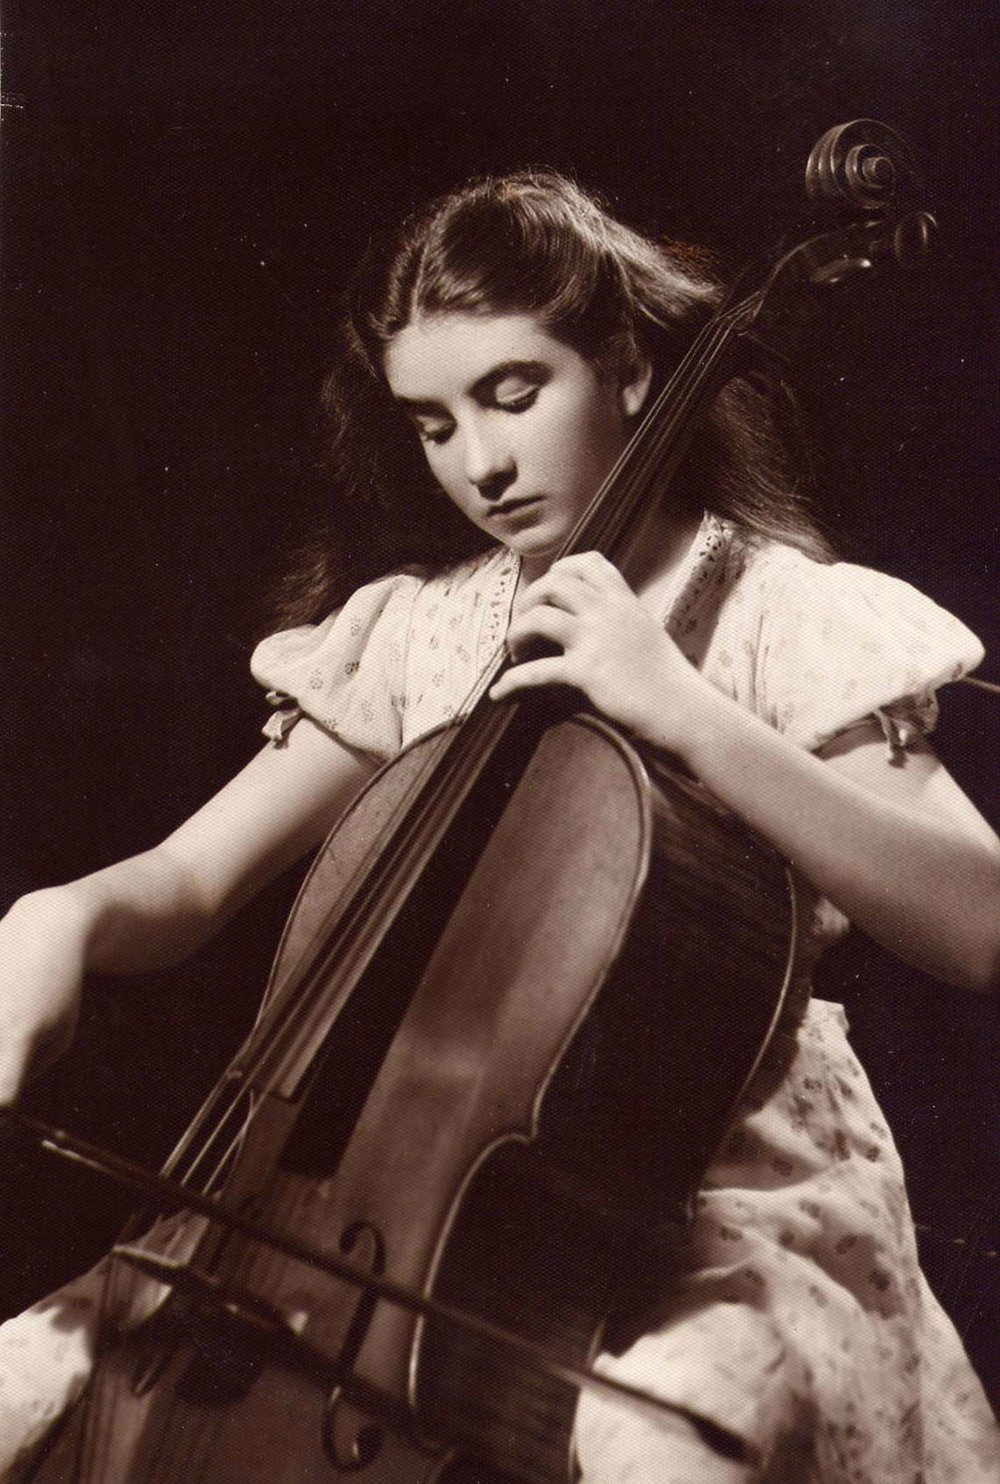 Maureen, aged 12, practicing her cello.